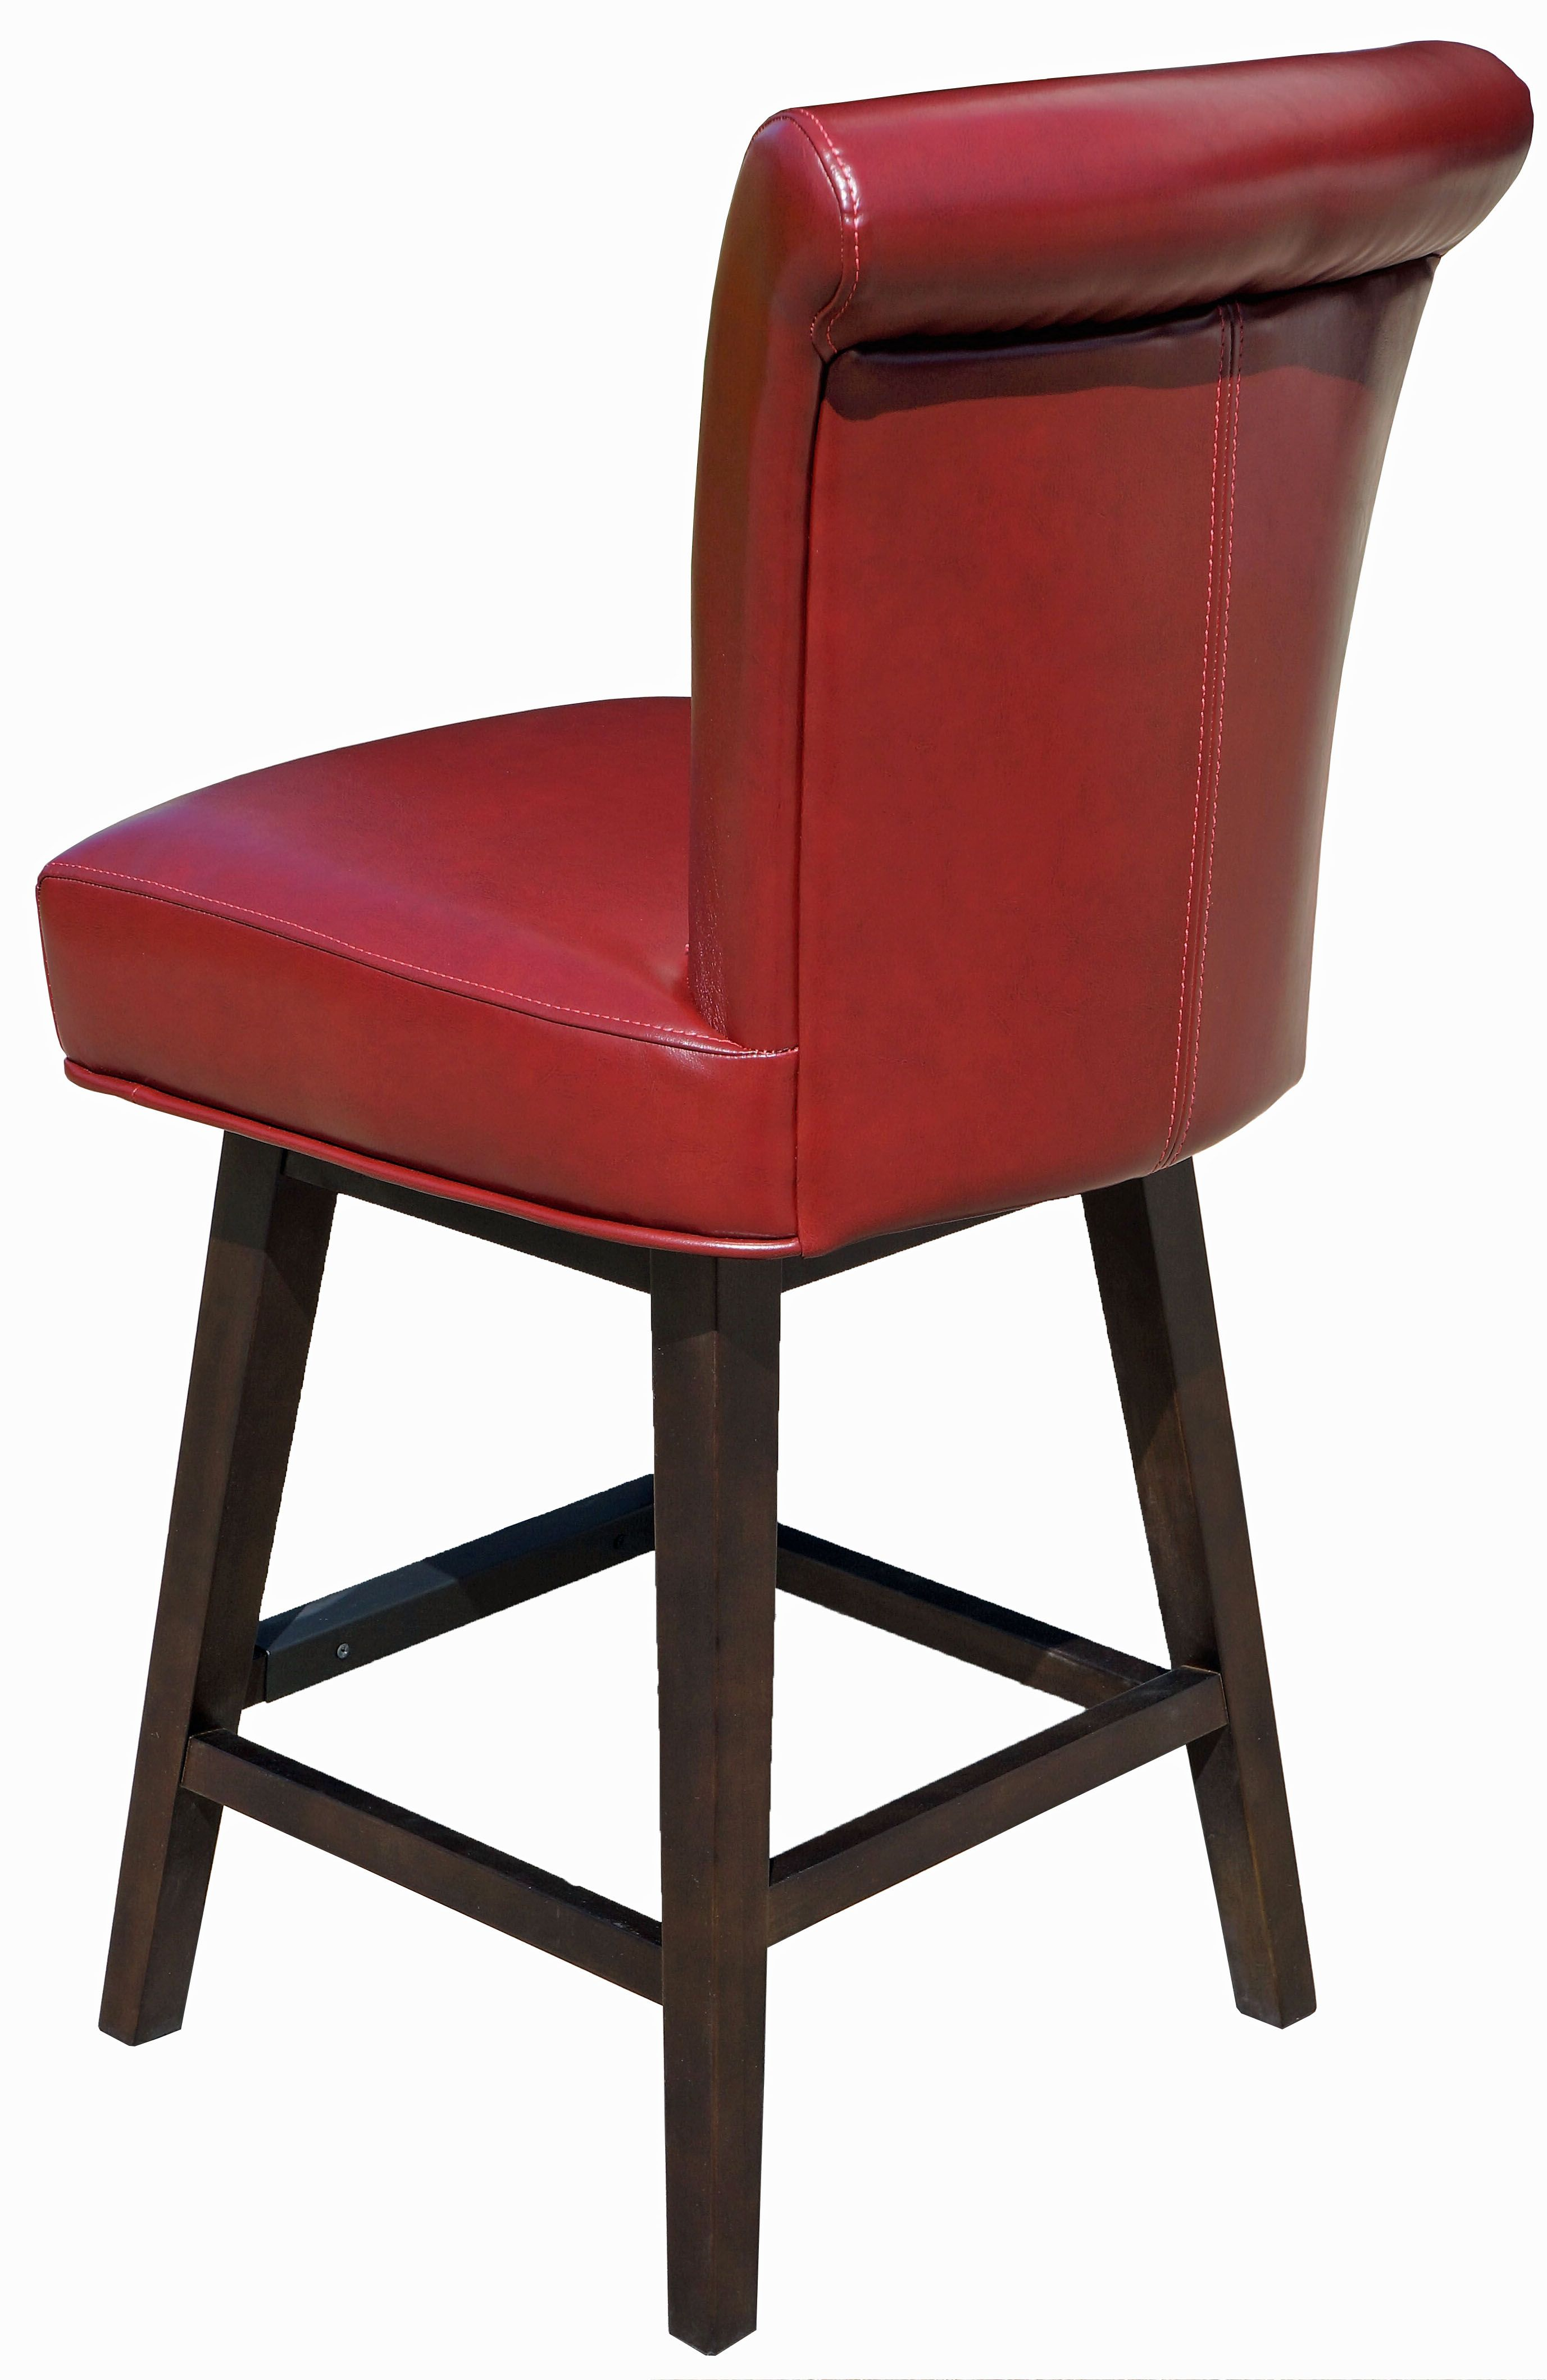 Bar Stools  Kitchen Counter Stools  Red RollBack Swivel